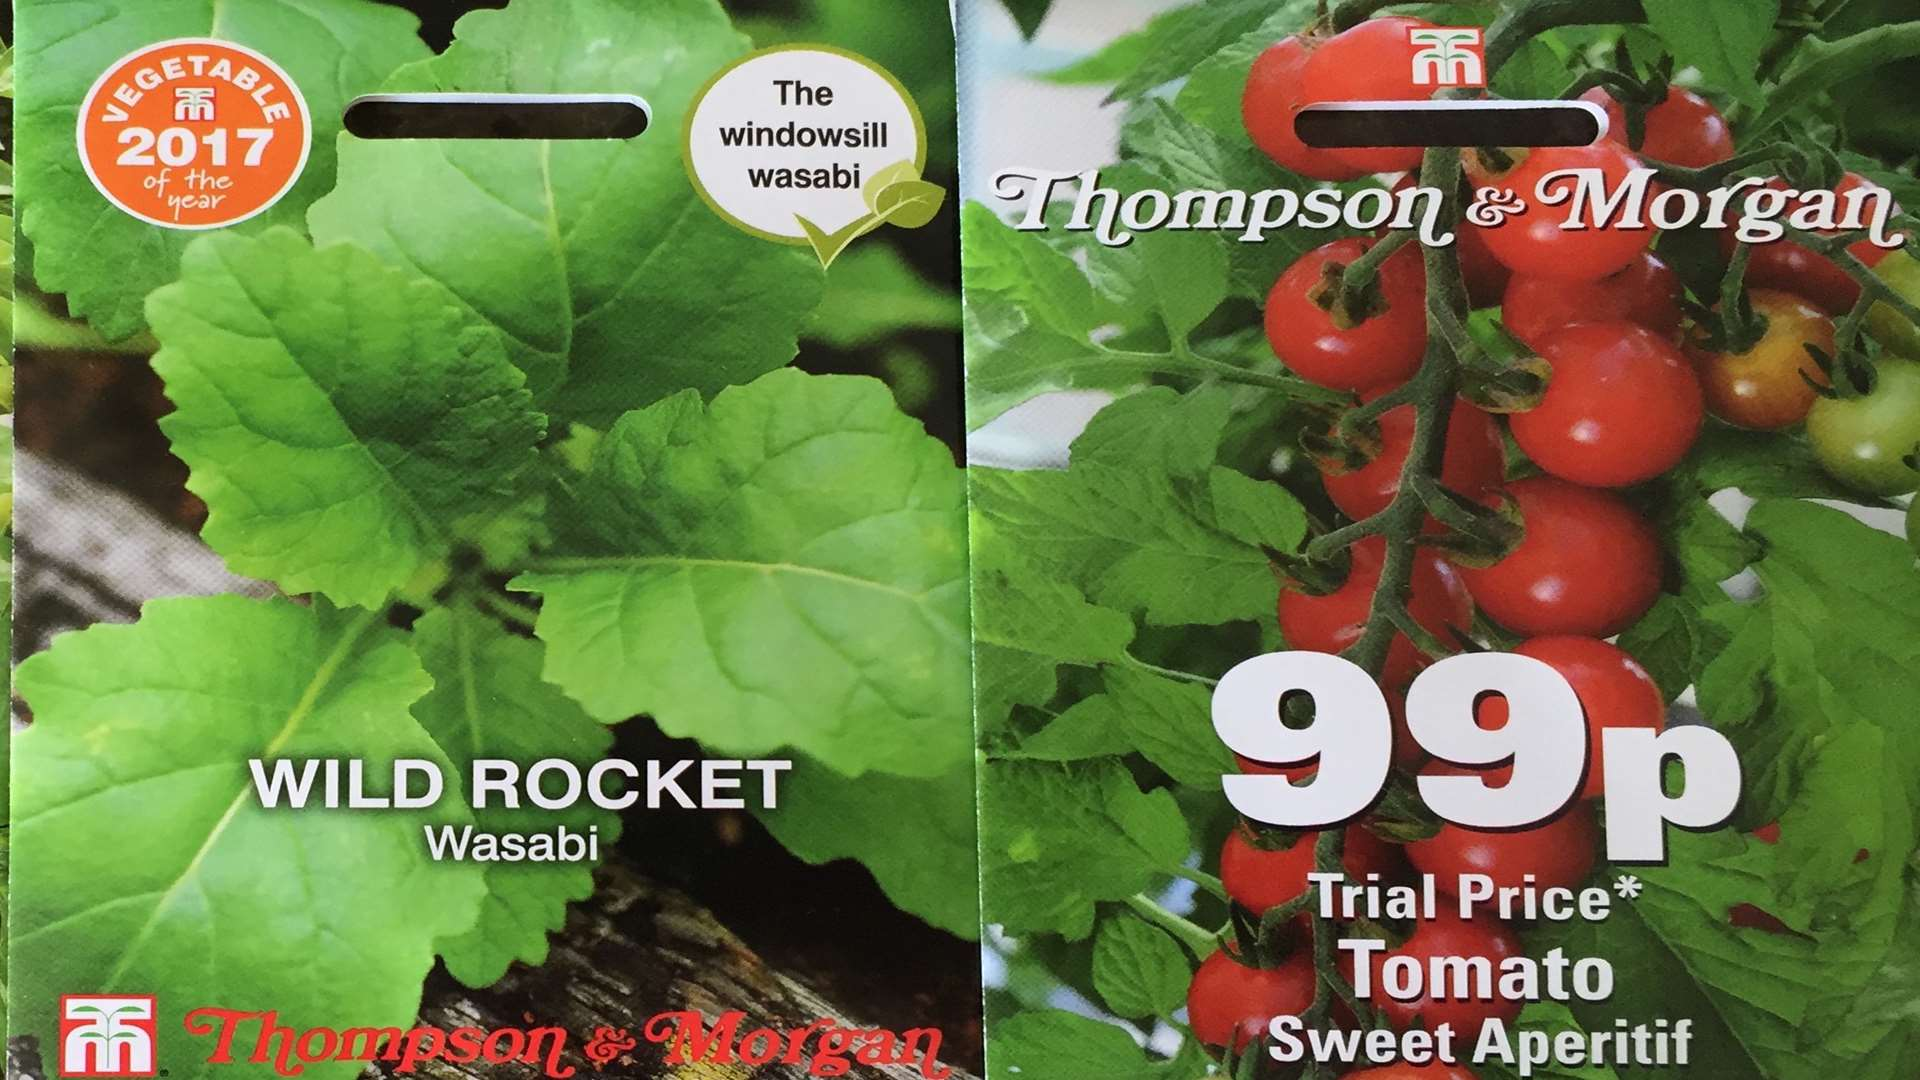 Thomson & Morgan has also introduced new tomatoes to its seeds range